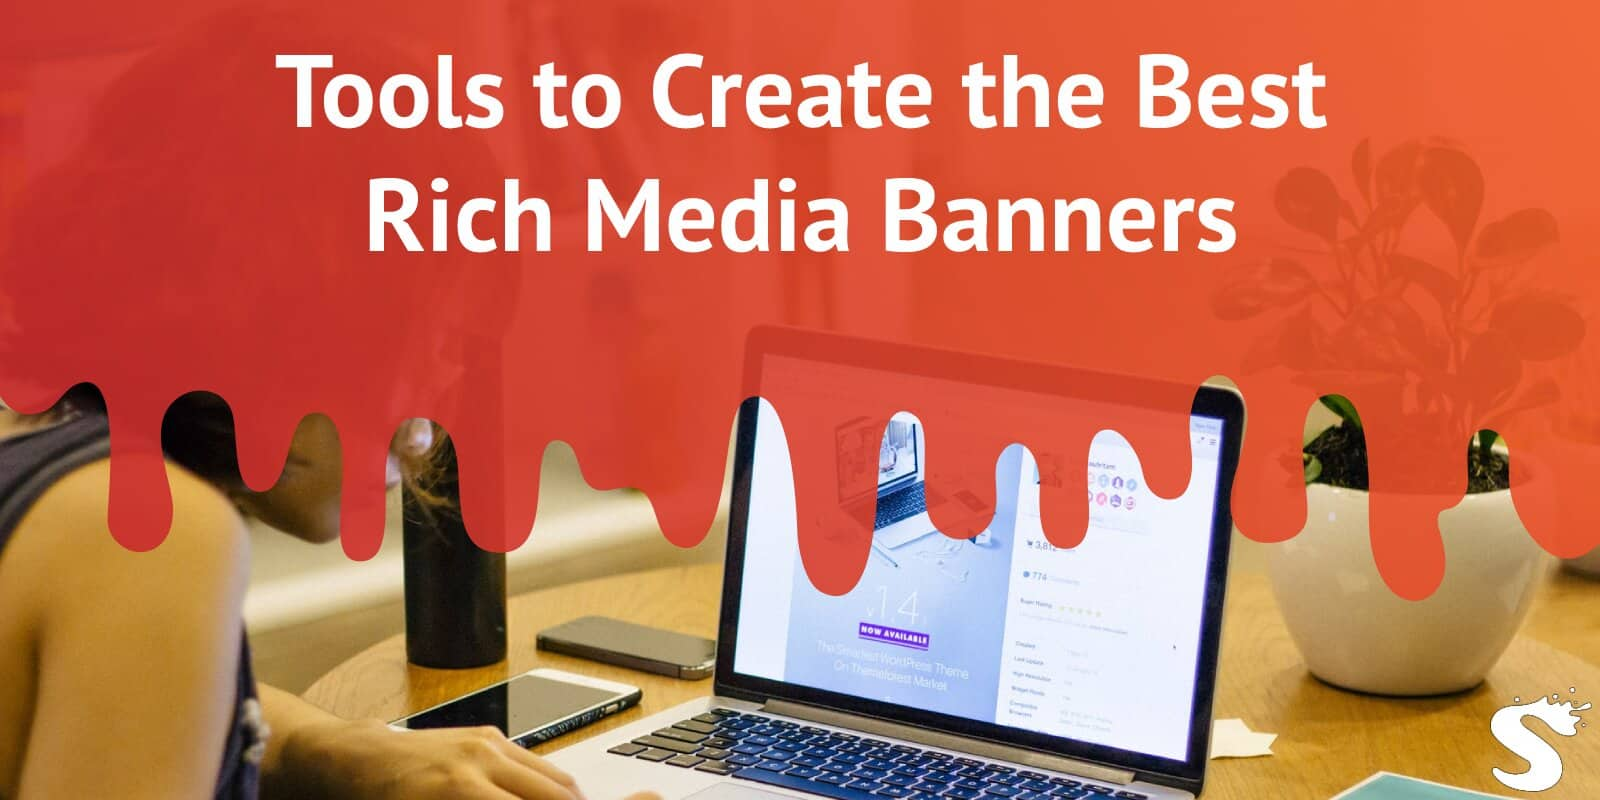 Tools to Create the Best Rich Media Banners